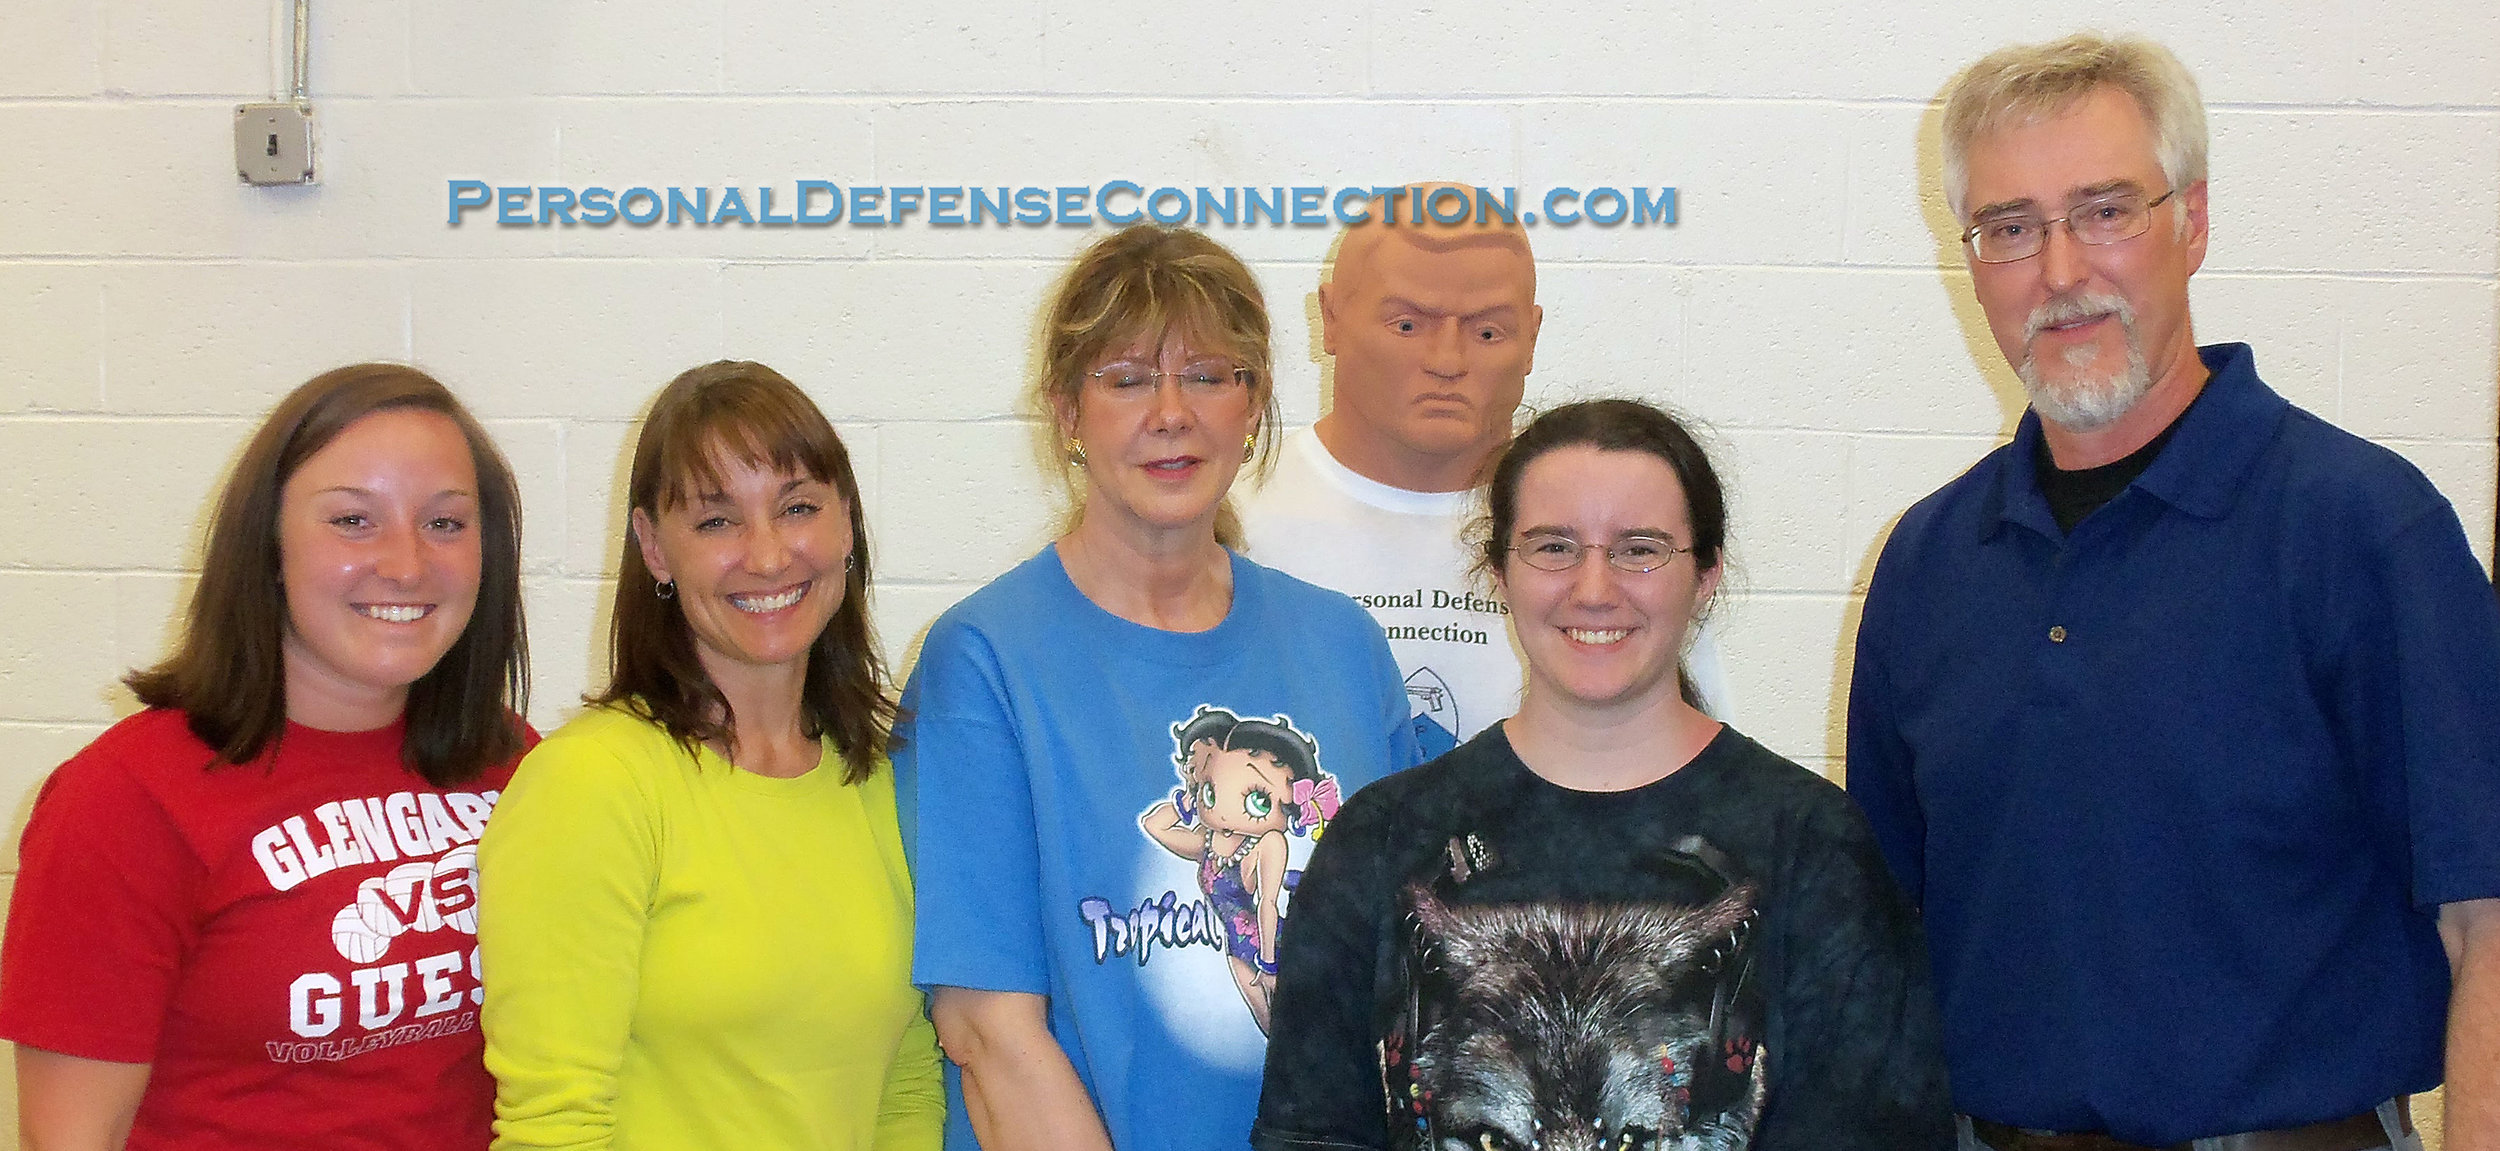 A Happy Group of Class Participants. Personal Defense Connection